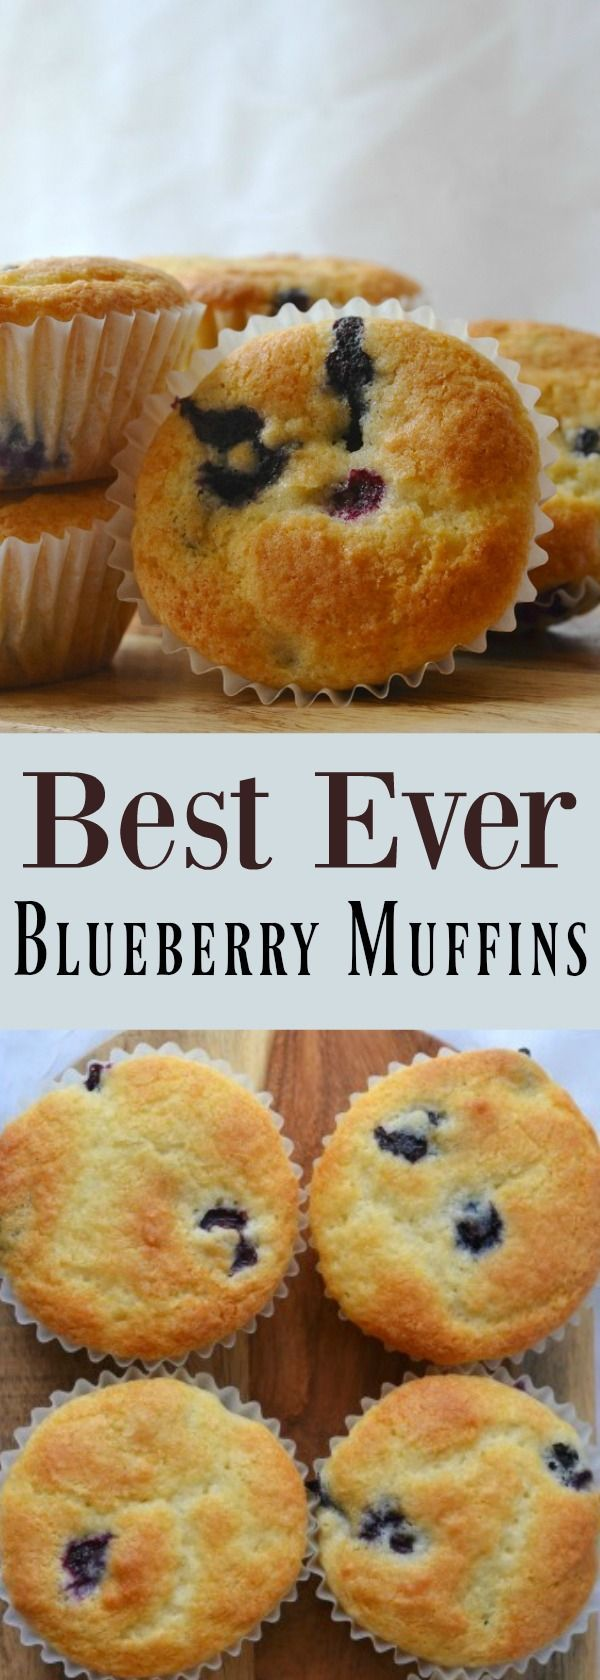 If your family loves summer road trips, these muffins make the perfect snack when travelling! They're sweet, tender and packed with berries, making them perfect for breakfast or a quick snack. Try baking them with Saskatoon berries for a special treat! #C